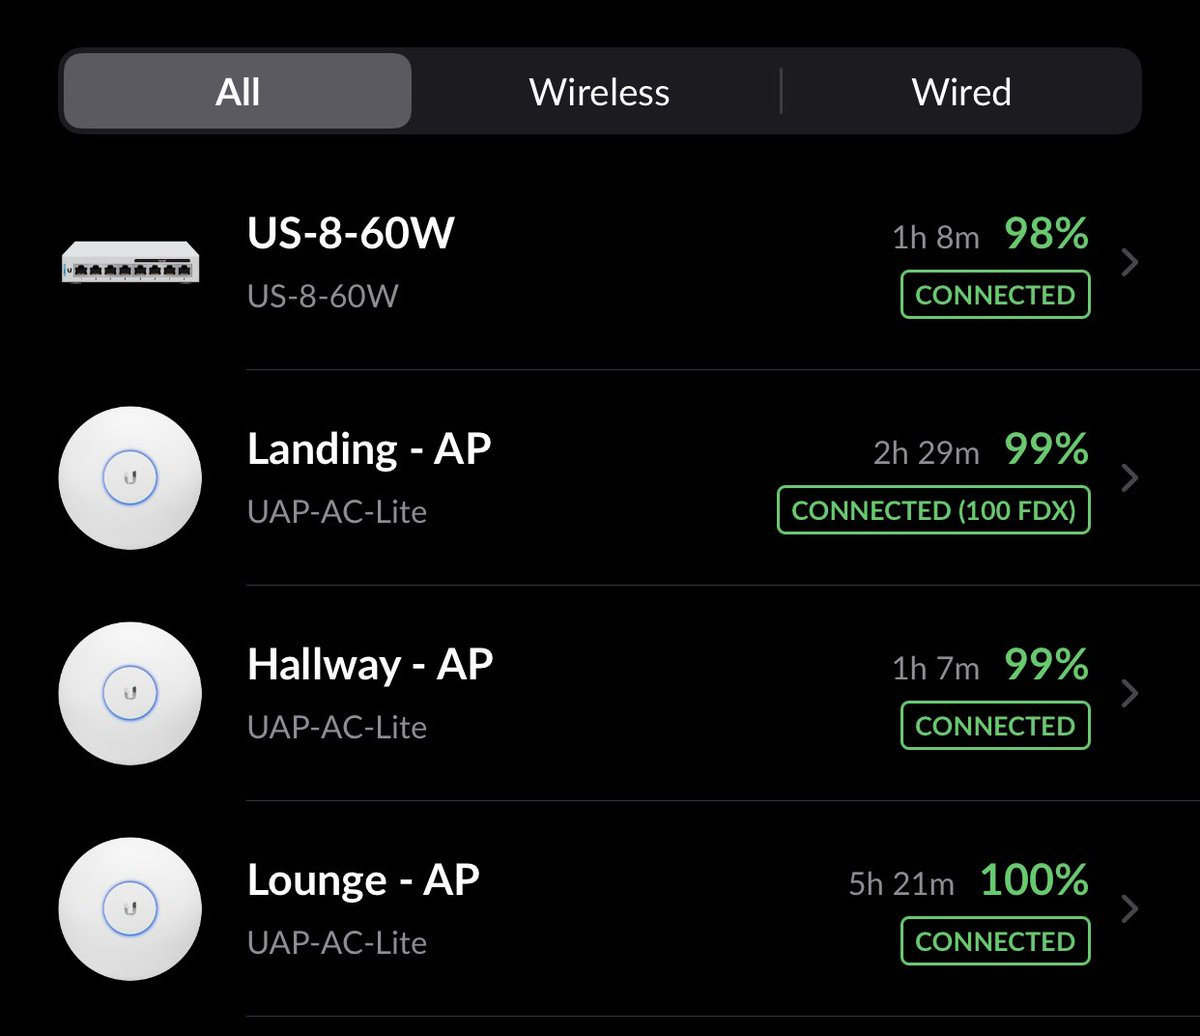 """@Ubiquiti have you ever had these issues with this """" Connected (100FDX) """"  firmware 4.3.24.11355? #unifi #accesspoints https://t.co/mvuBTmChfG"""